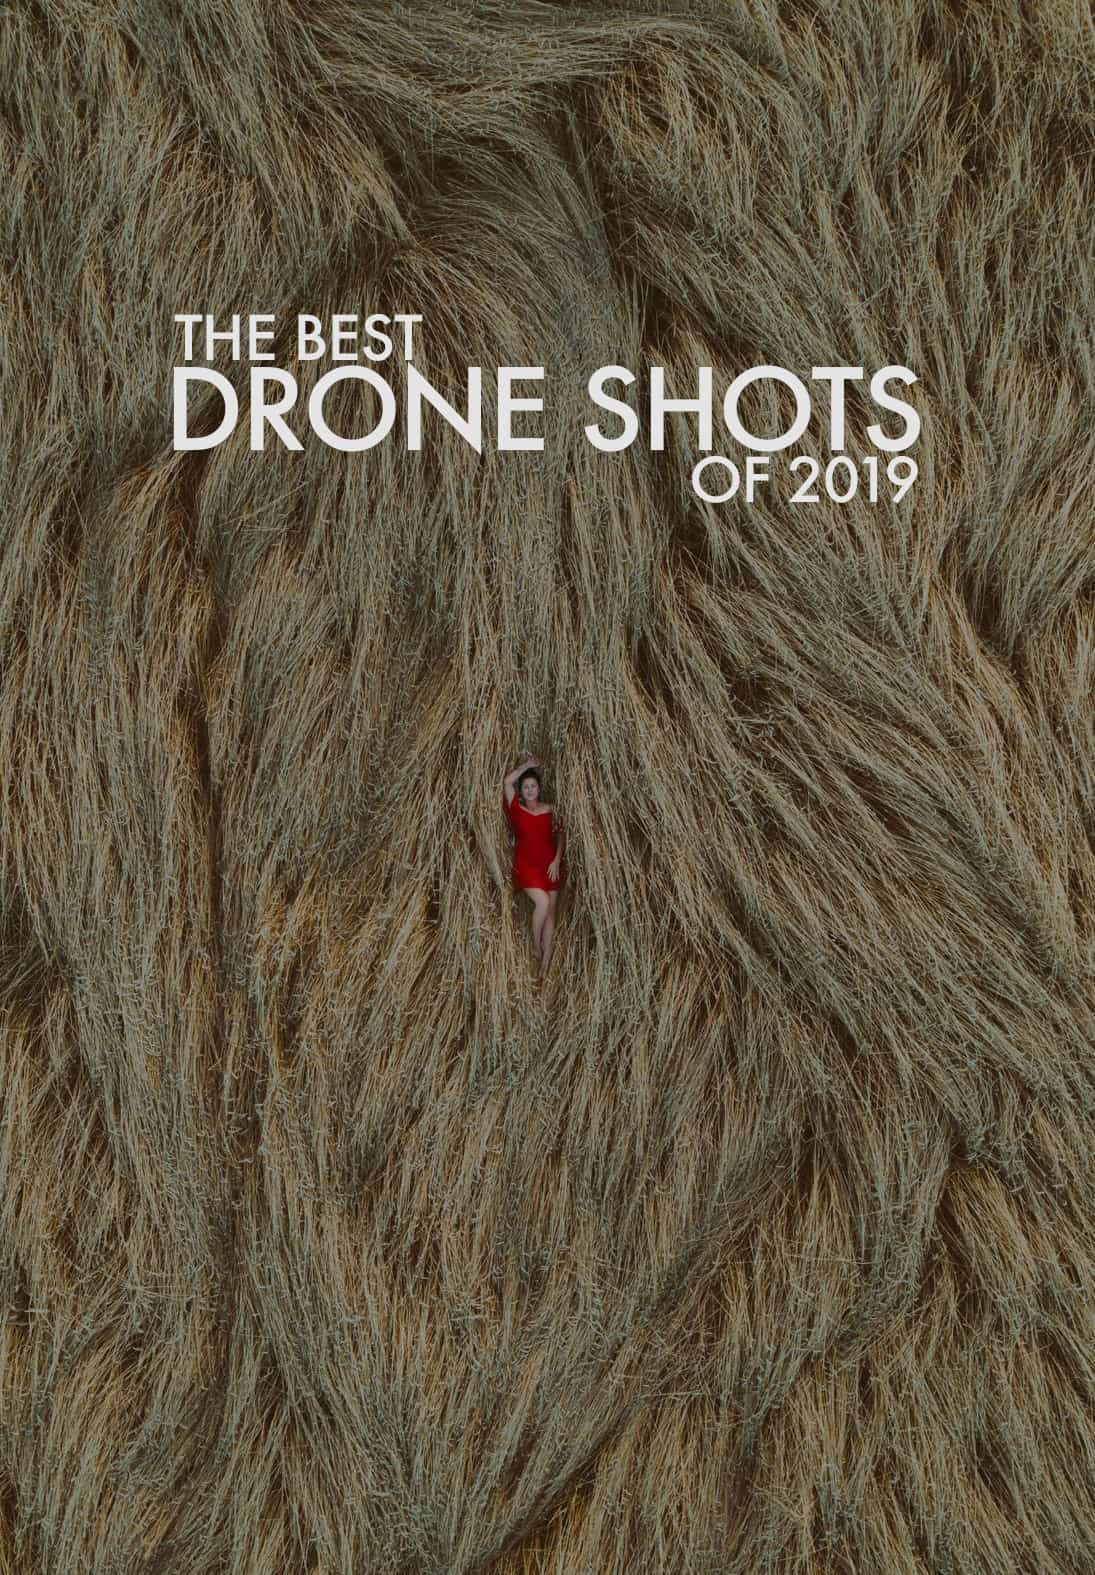 The 15 Most Epic Drone Shots Of 2019